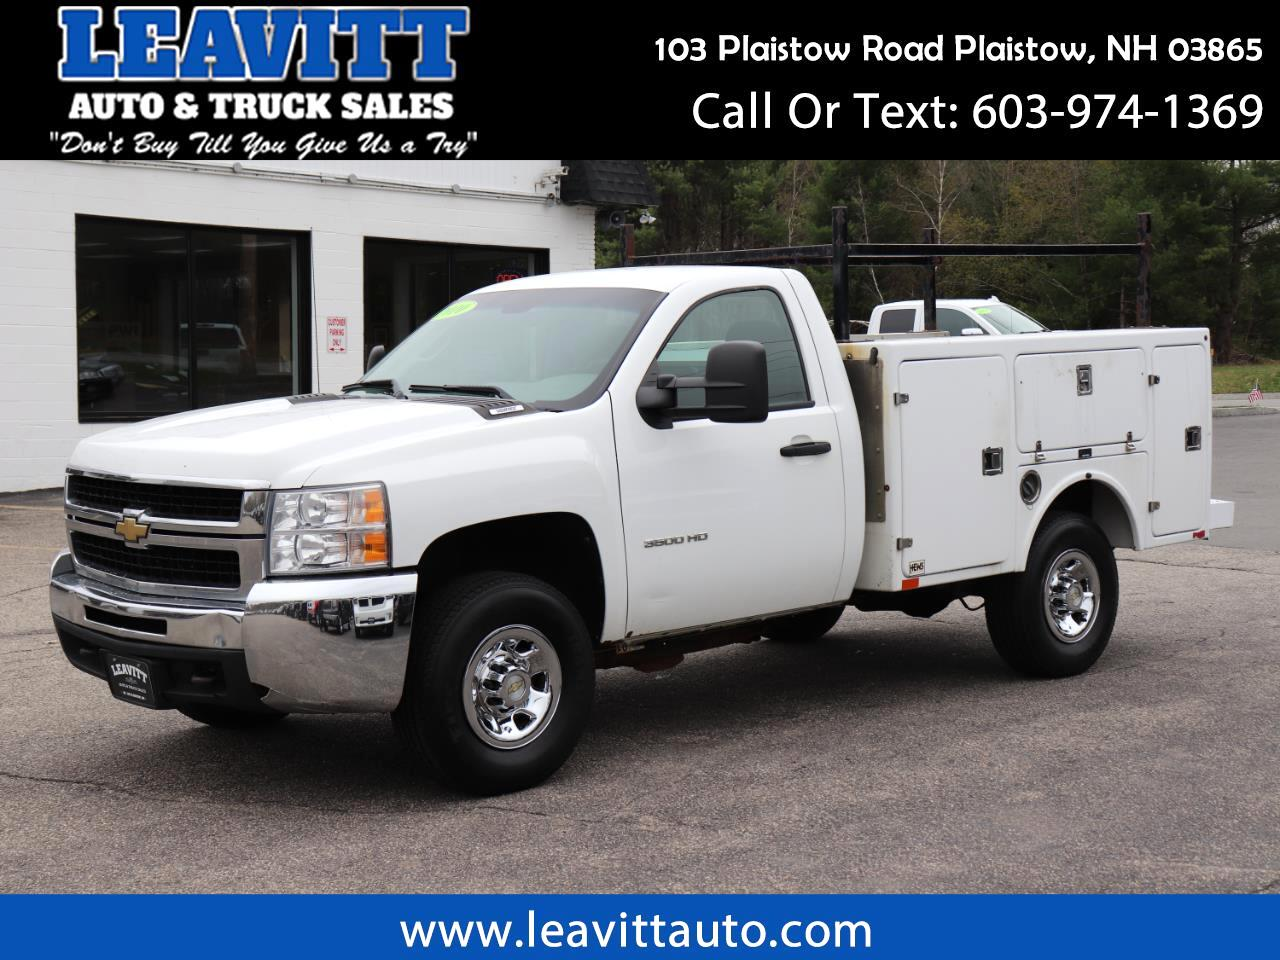 2010 Chevrolet Silverado 3500HD UTLITY BODY W/T